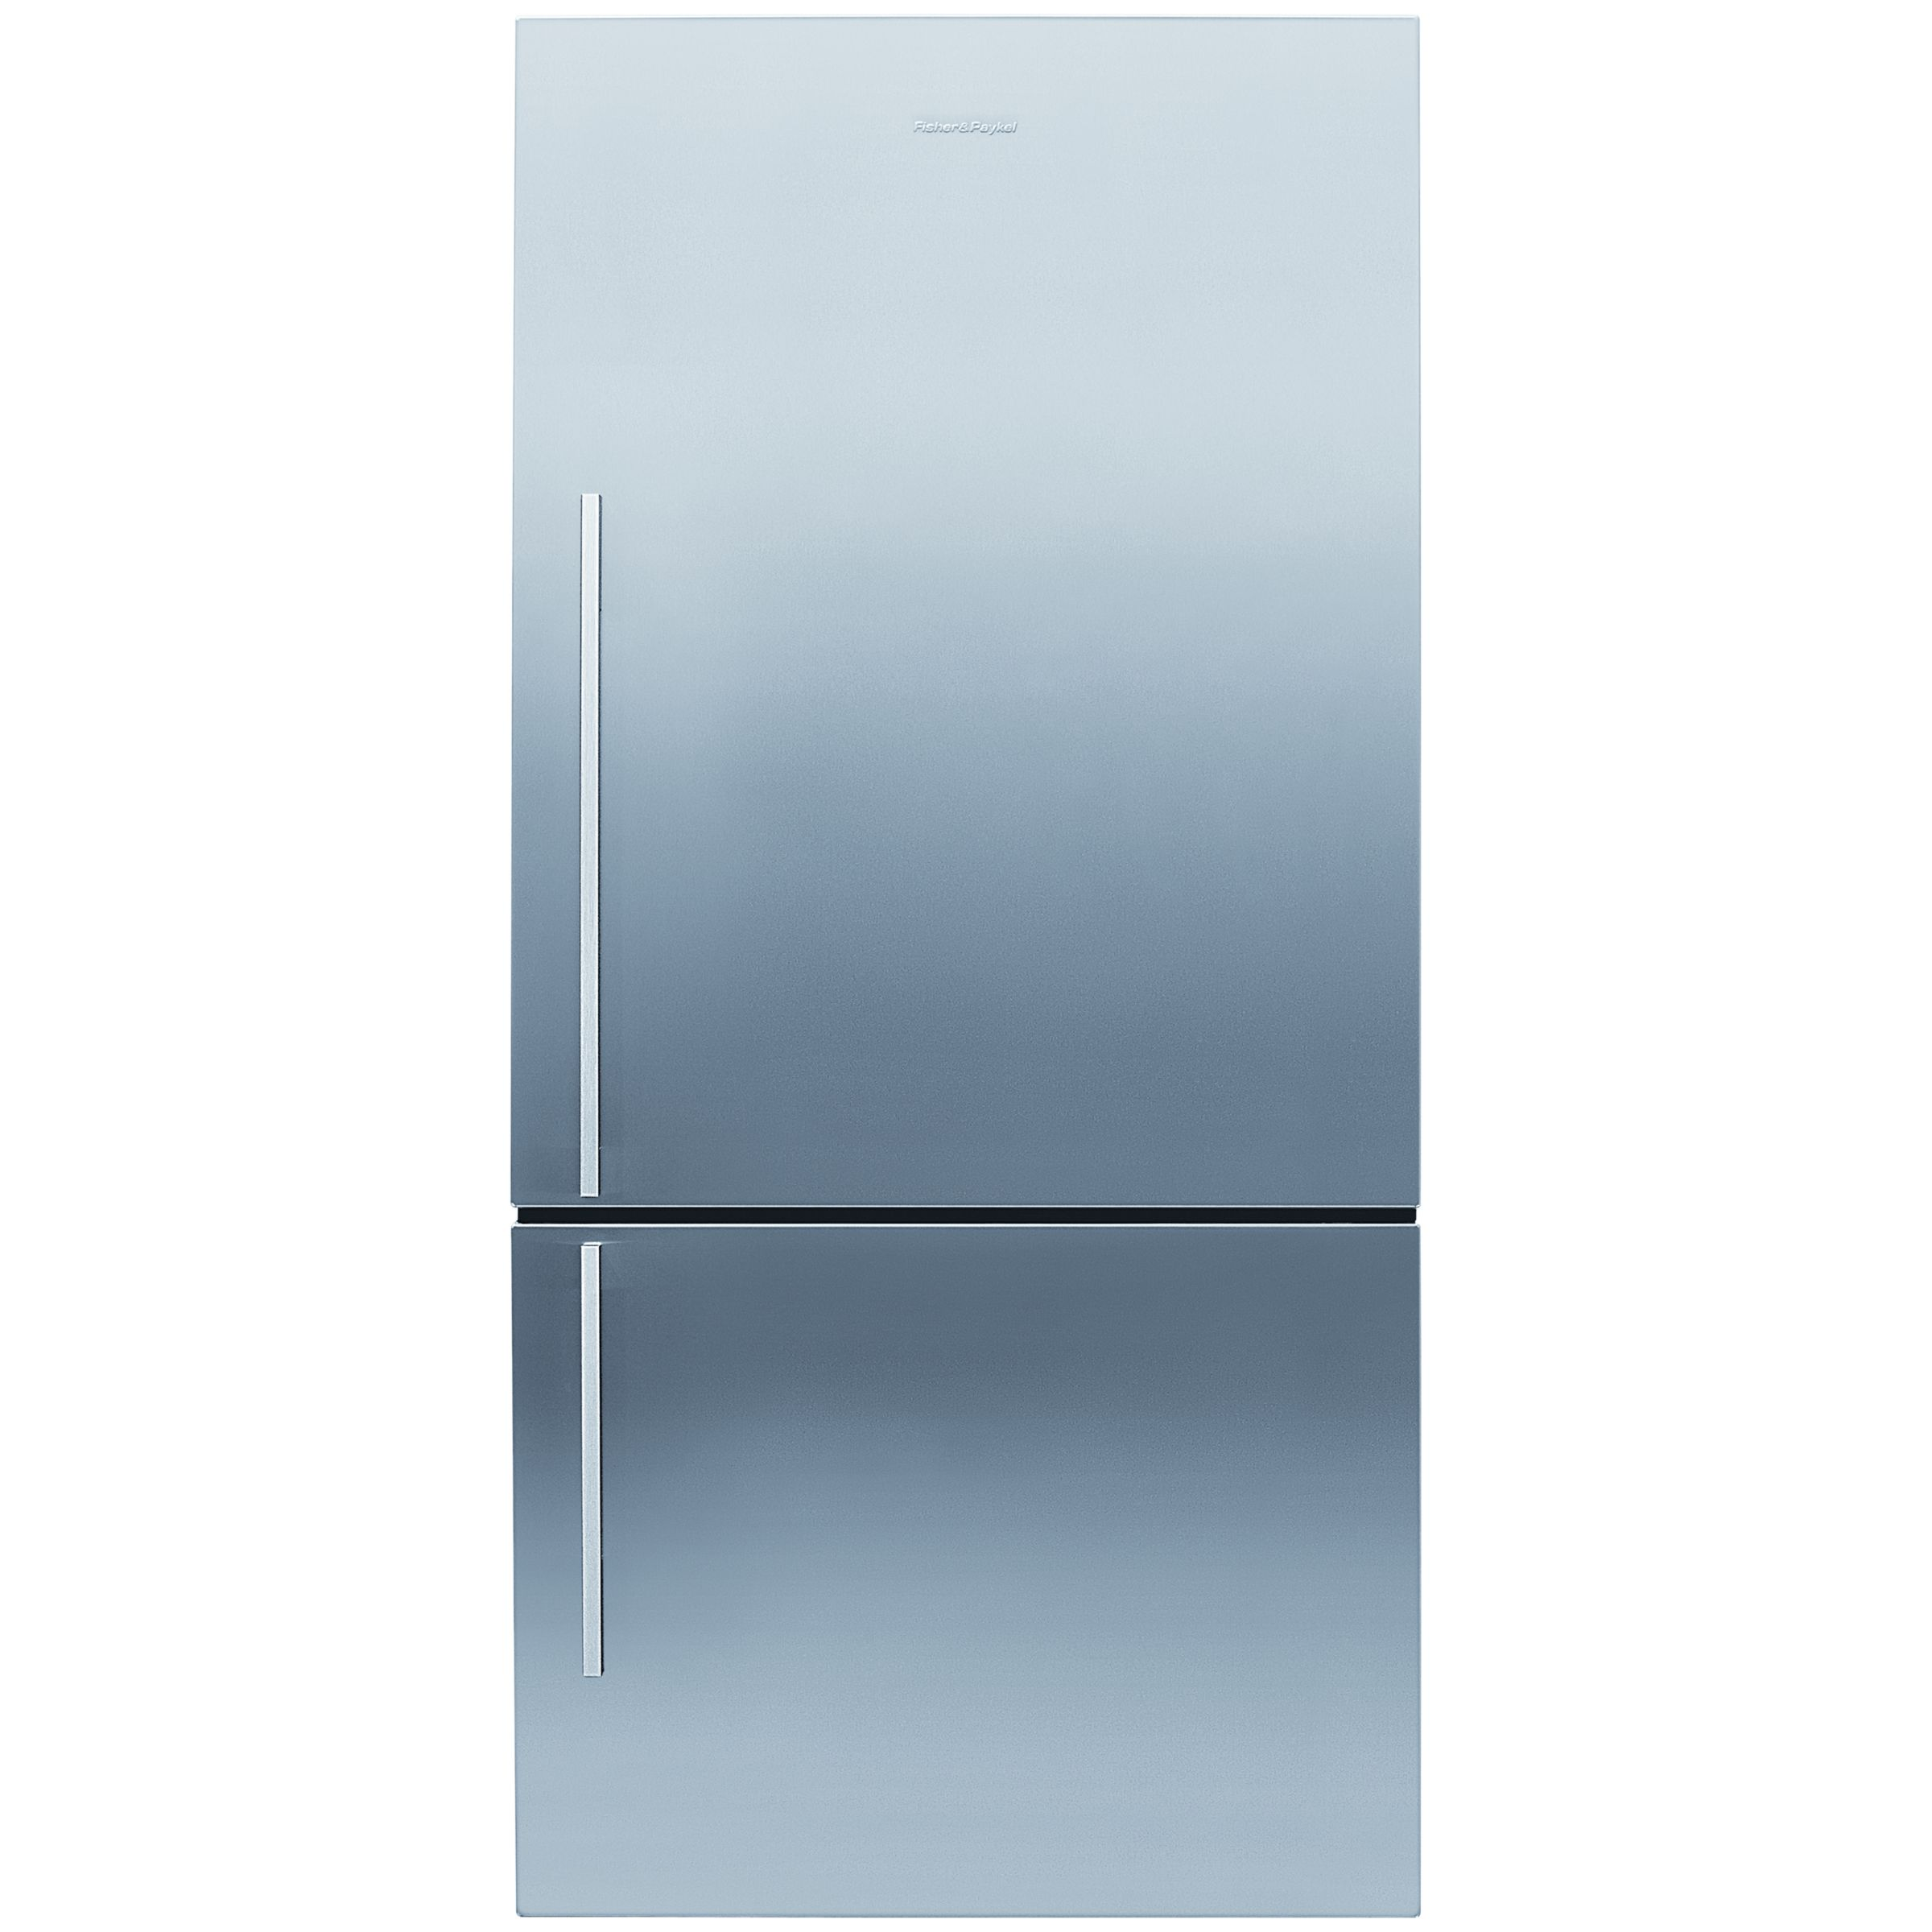 Fisher & Paykel Fisher & Paykel E522BRXFD4 Fridge Freezer, A+ Energy Rating, 80cm Wide, Stainless Steel